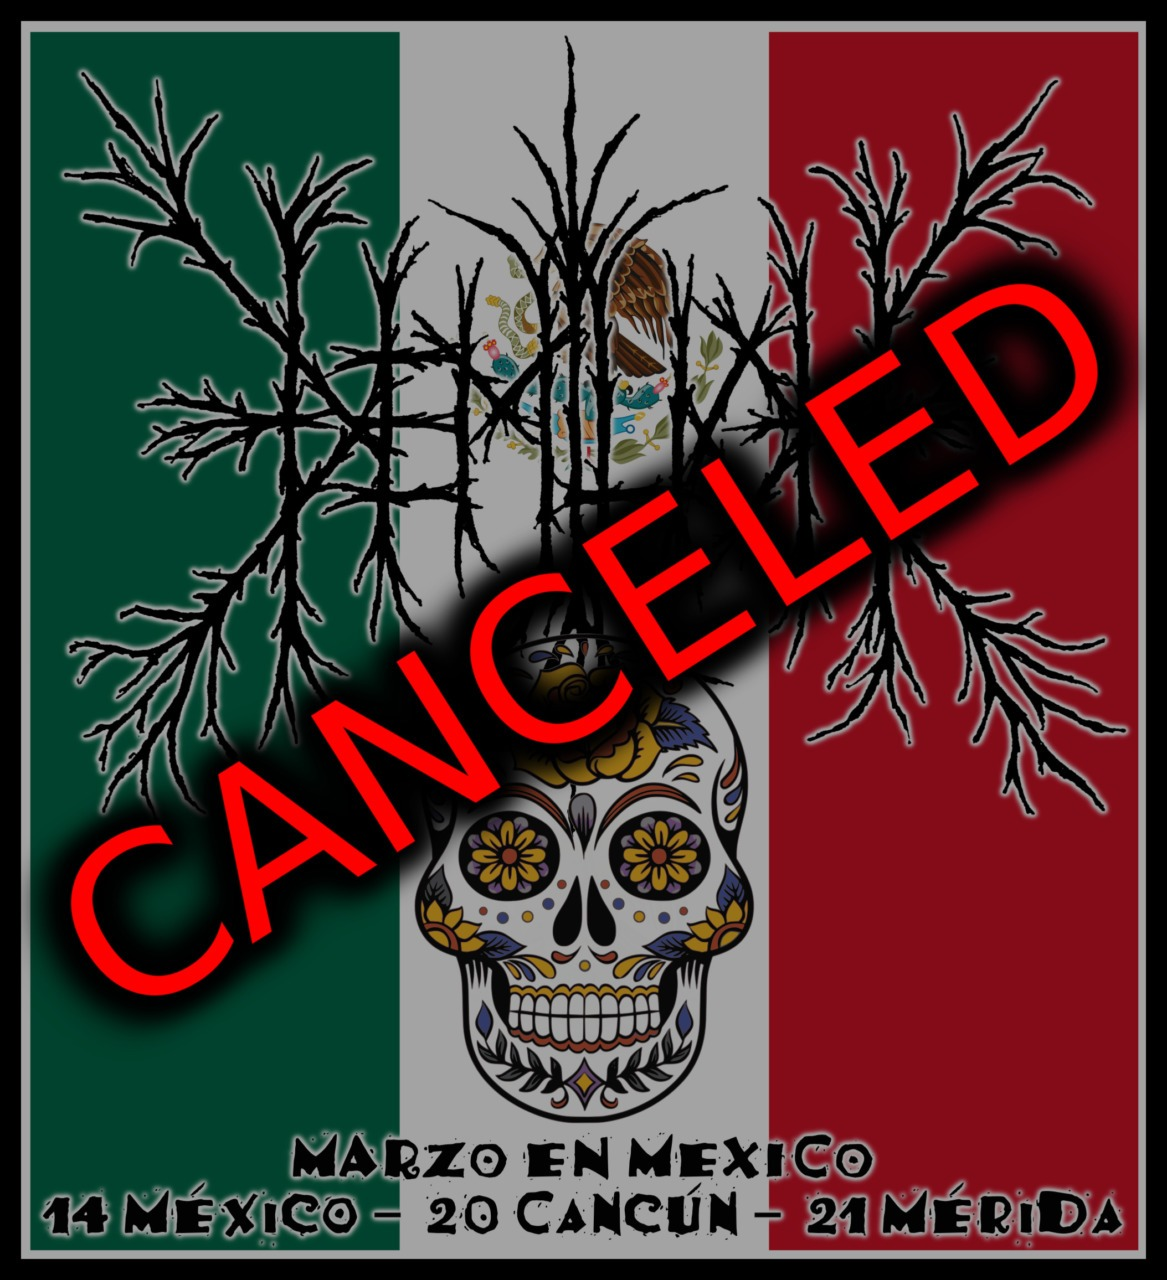 Mexico tour canceled!